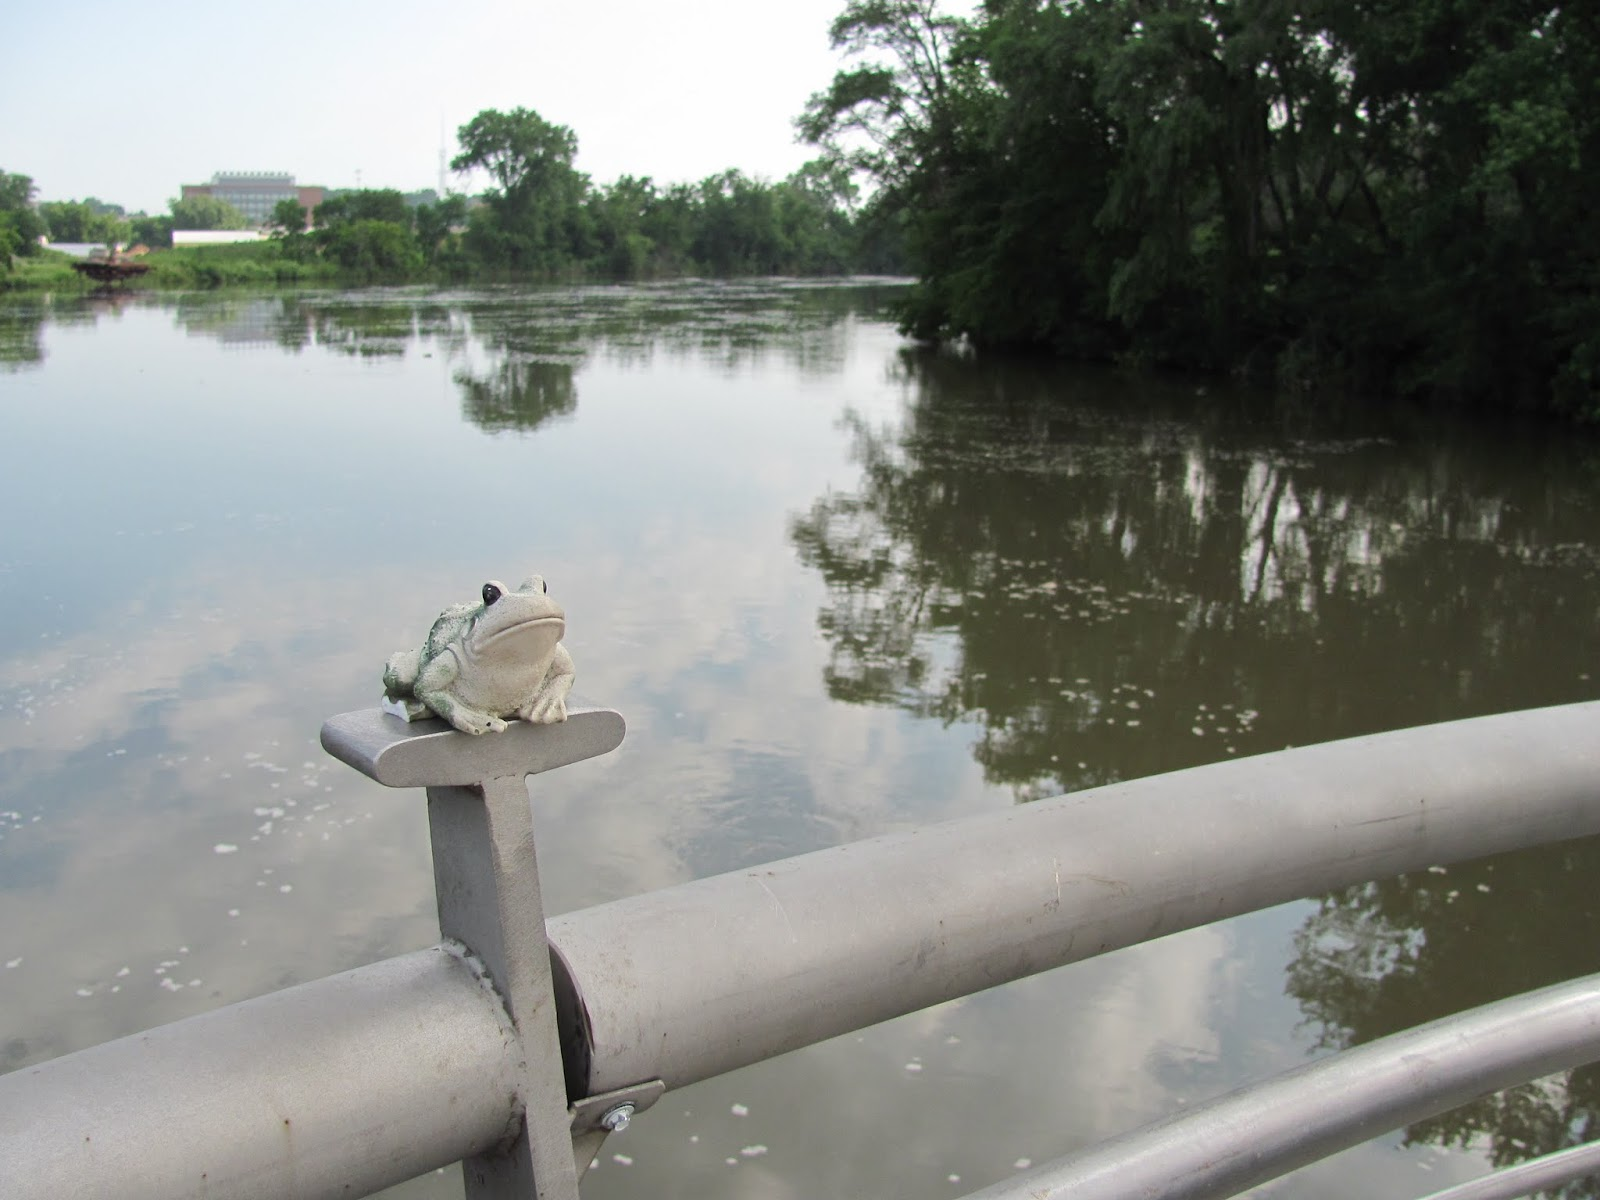 Frog poses on the Iowa River Power bridge in Coralville, Iowa